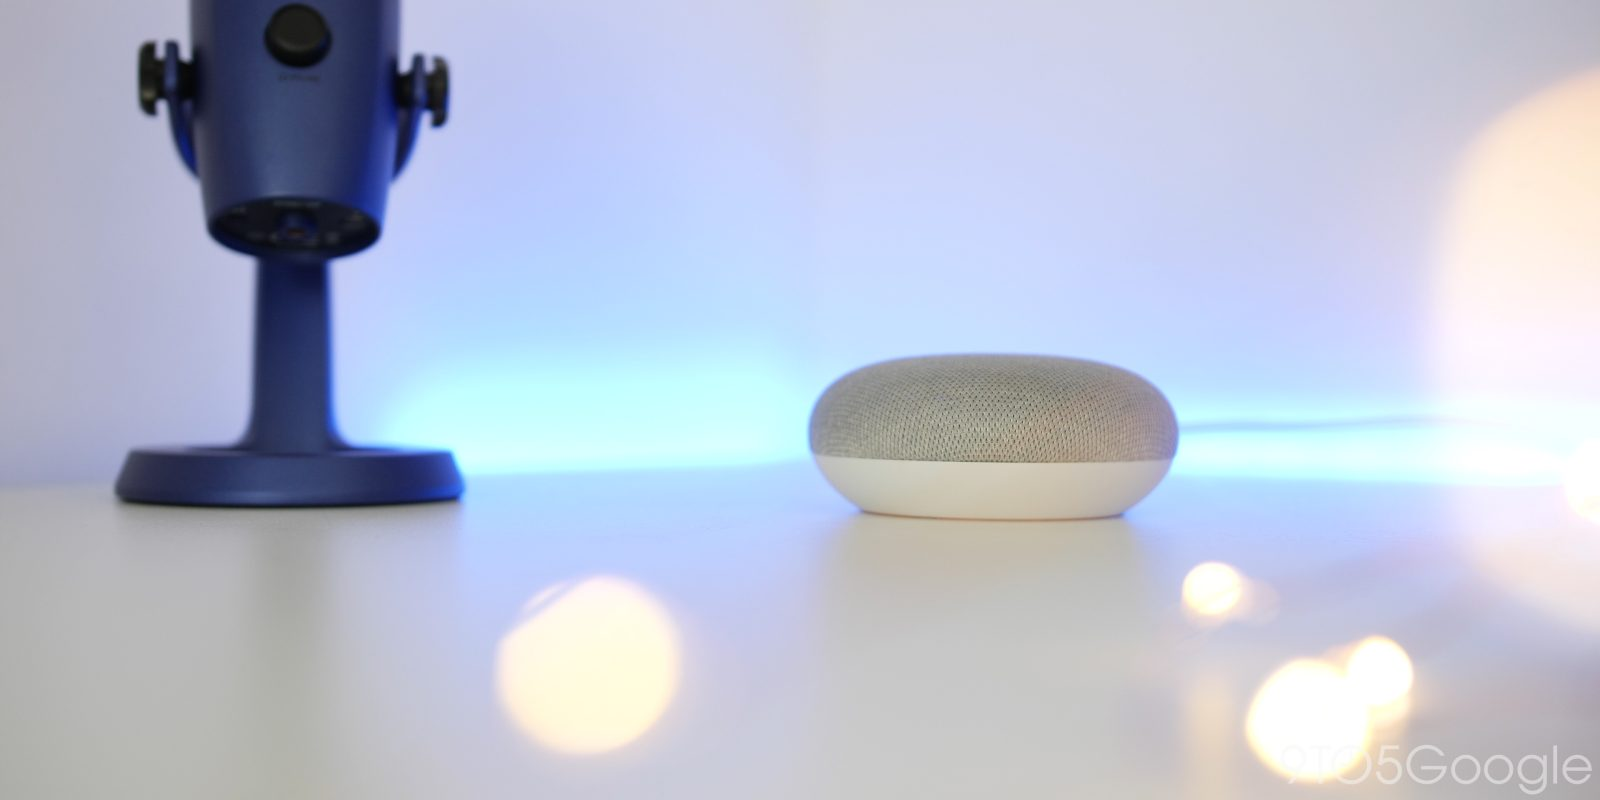 [Update: Back again in UK] YouTube Premium subscribers can get a free Google Home Mini in some regions